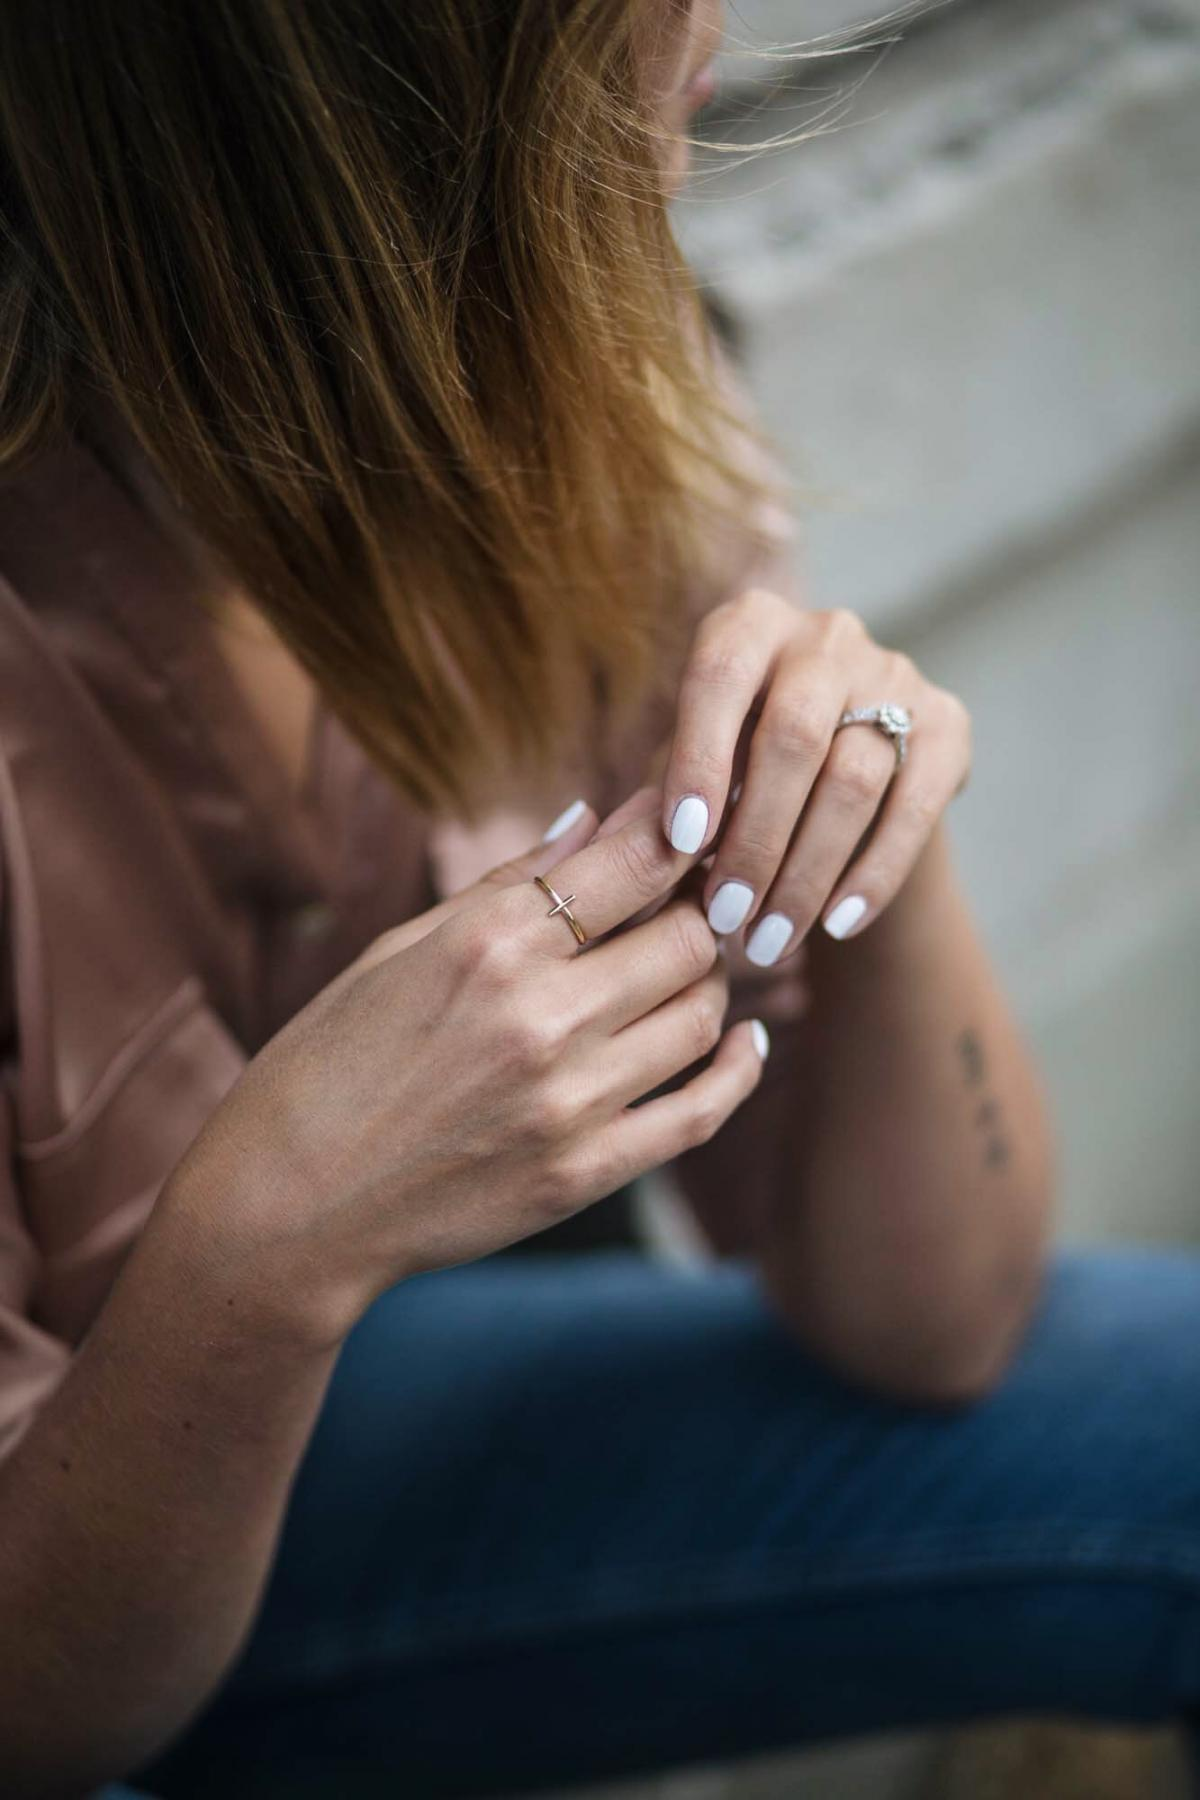 satin shirt, gold cross ring, white nails manicure